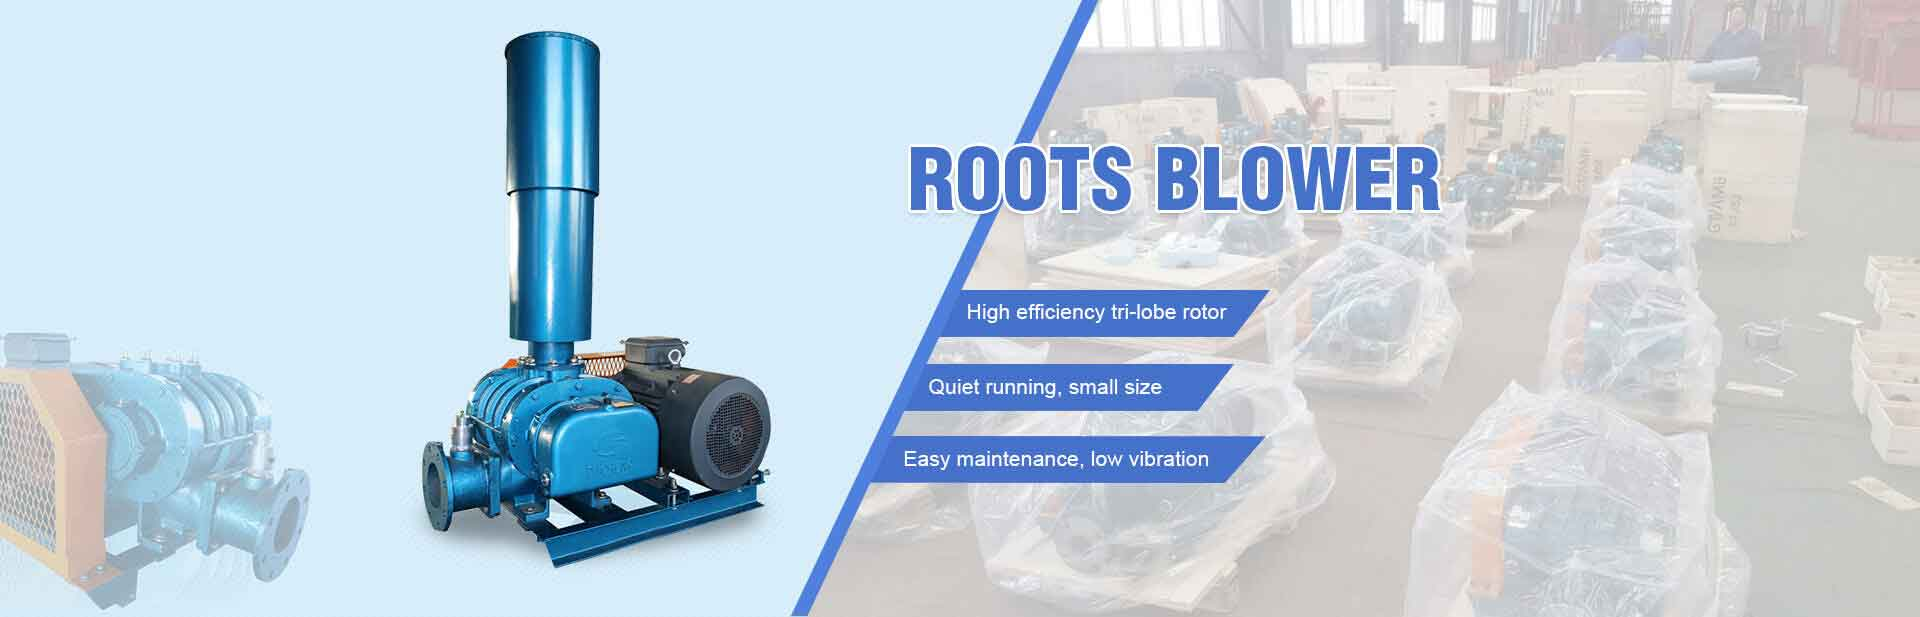 Roots Blower